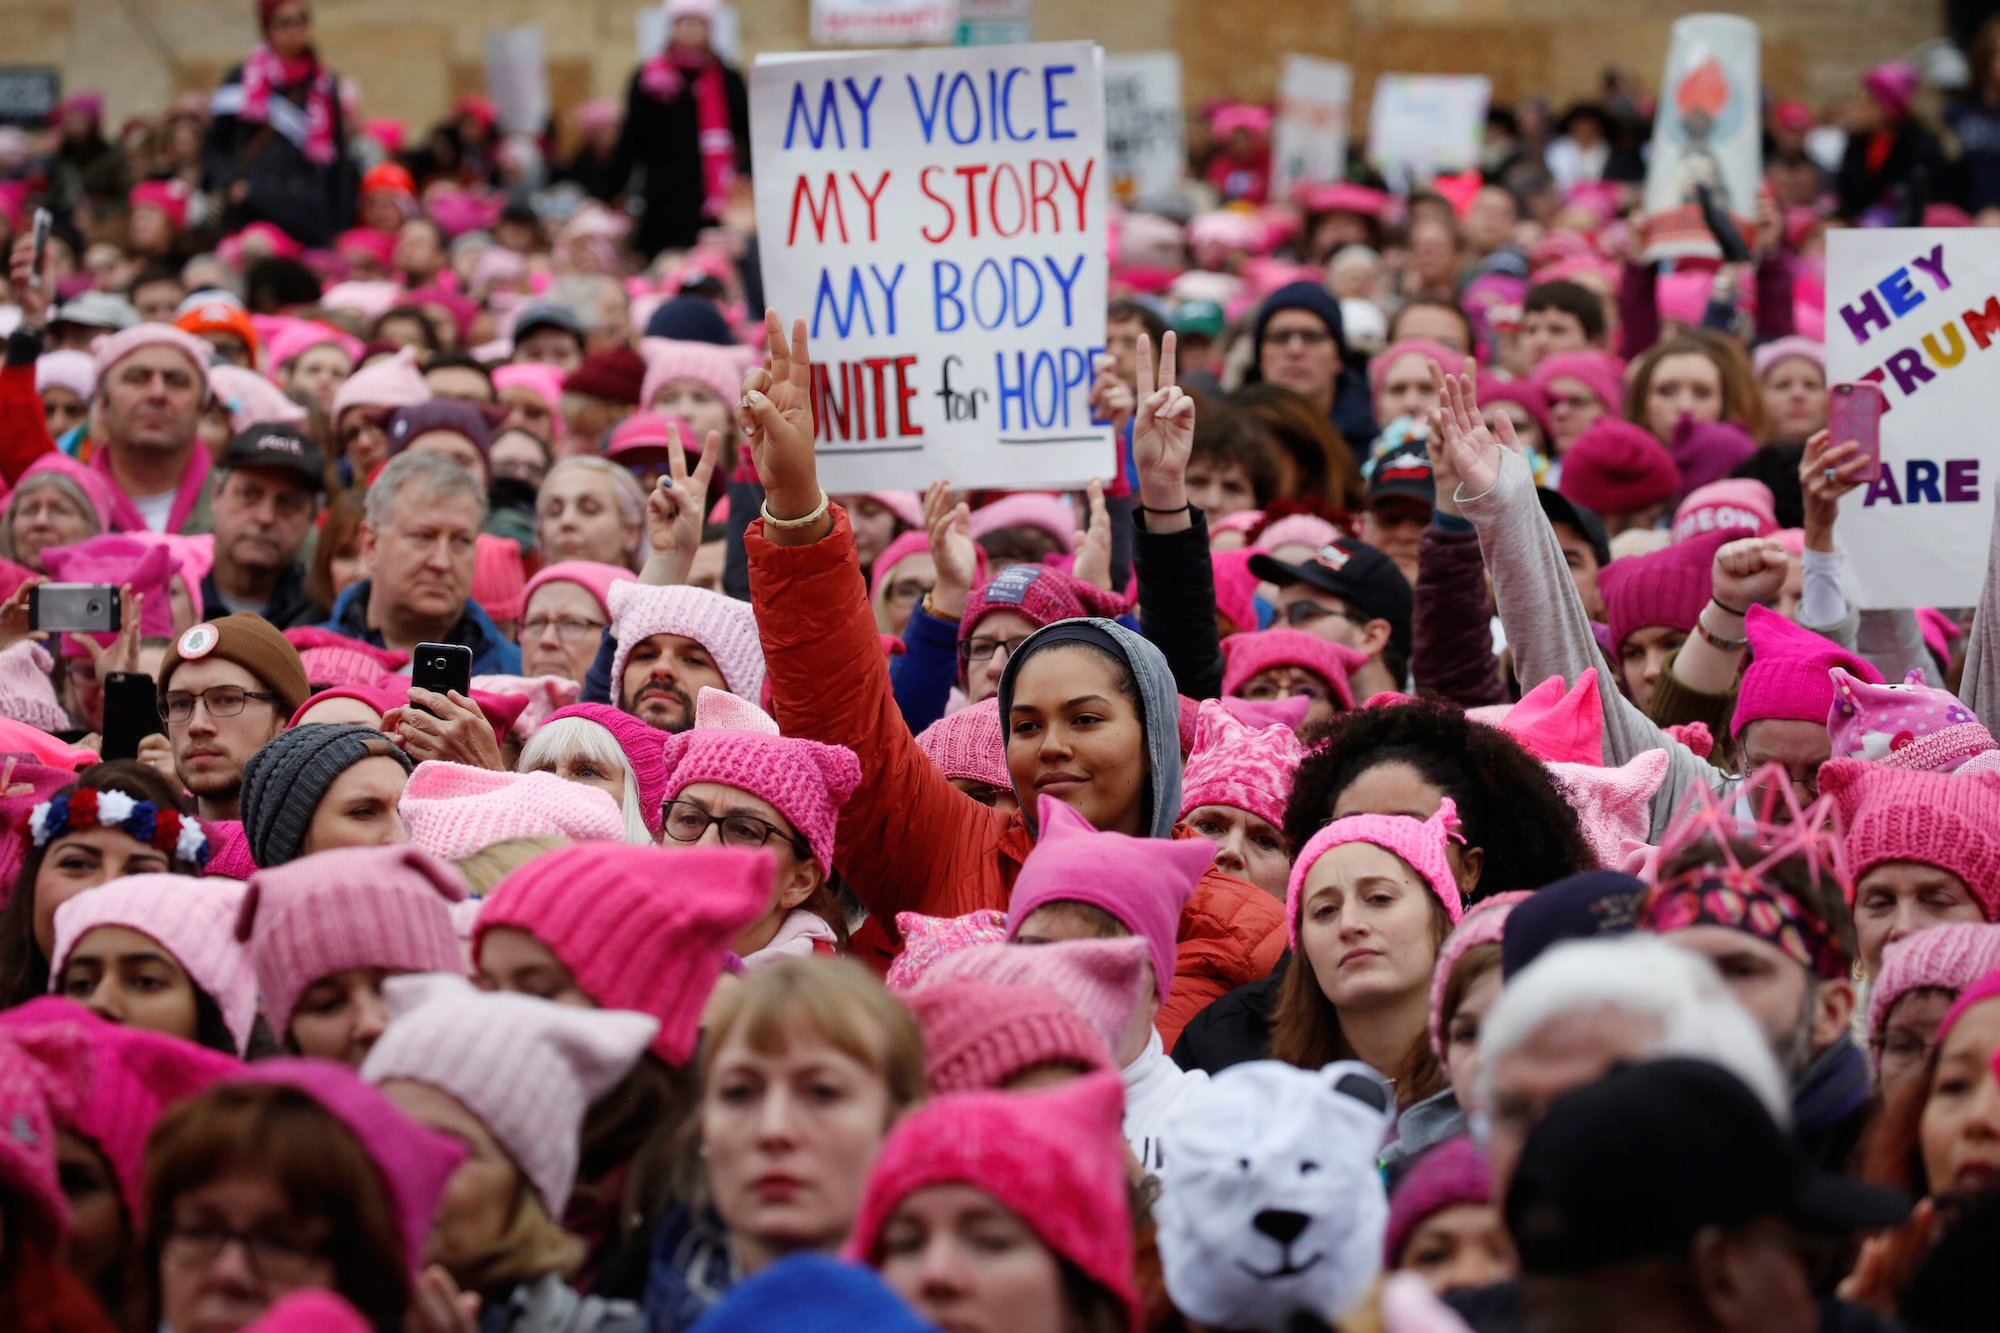 Women's March crowd wearing pink hats